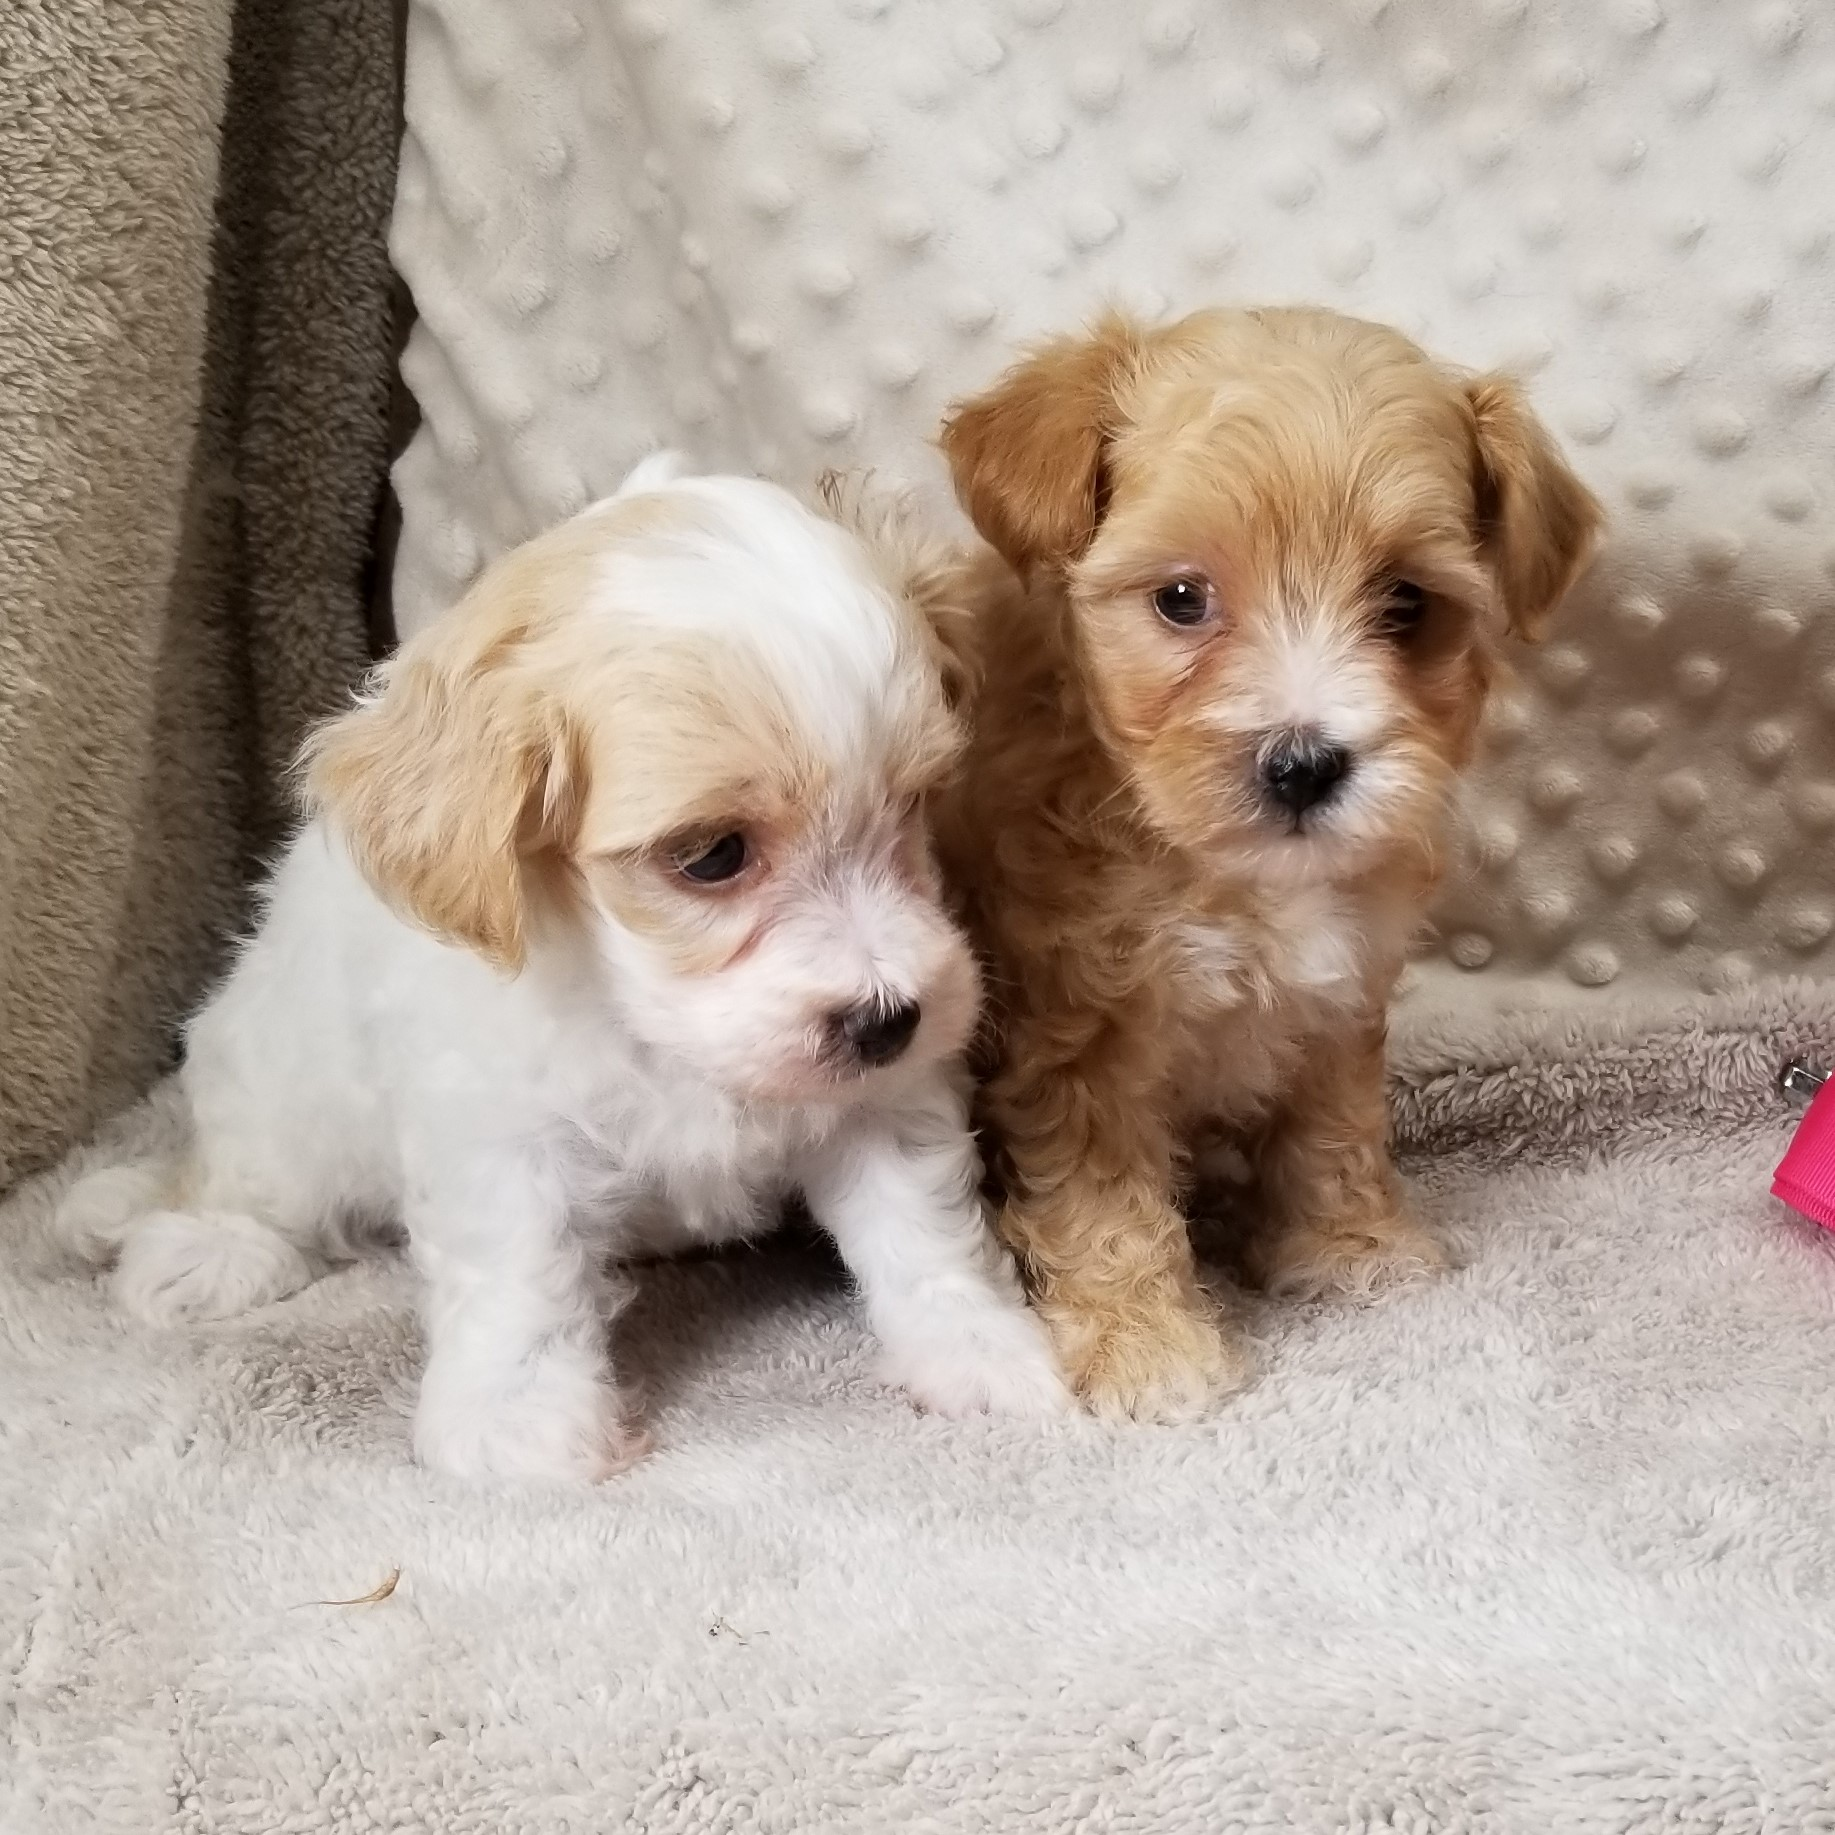 Toy Breed Puppies For Sale in Texas | Vicky's Toy Puppies